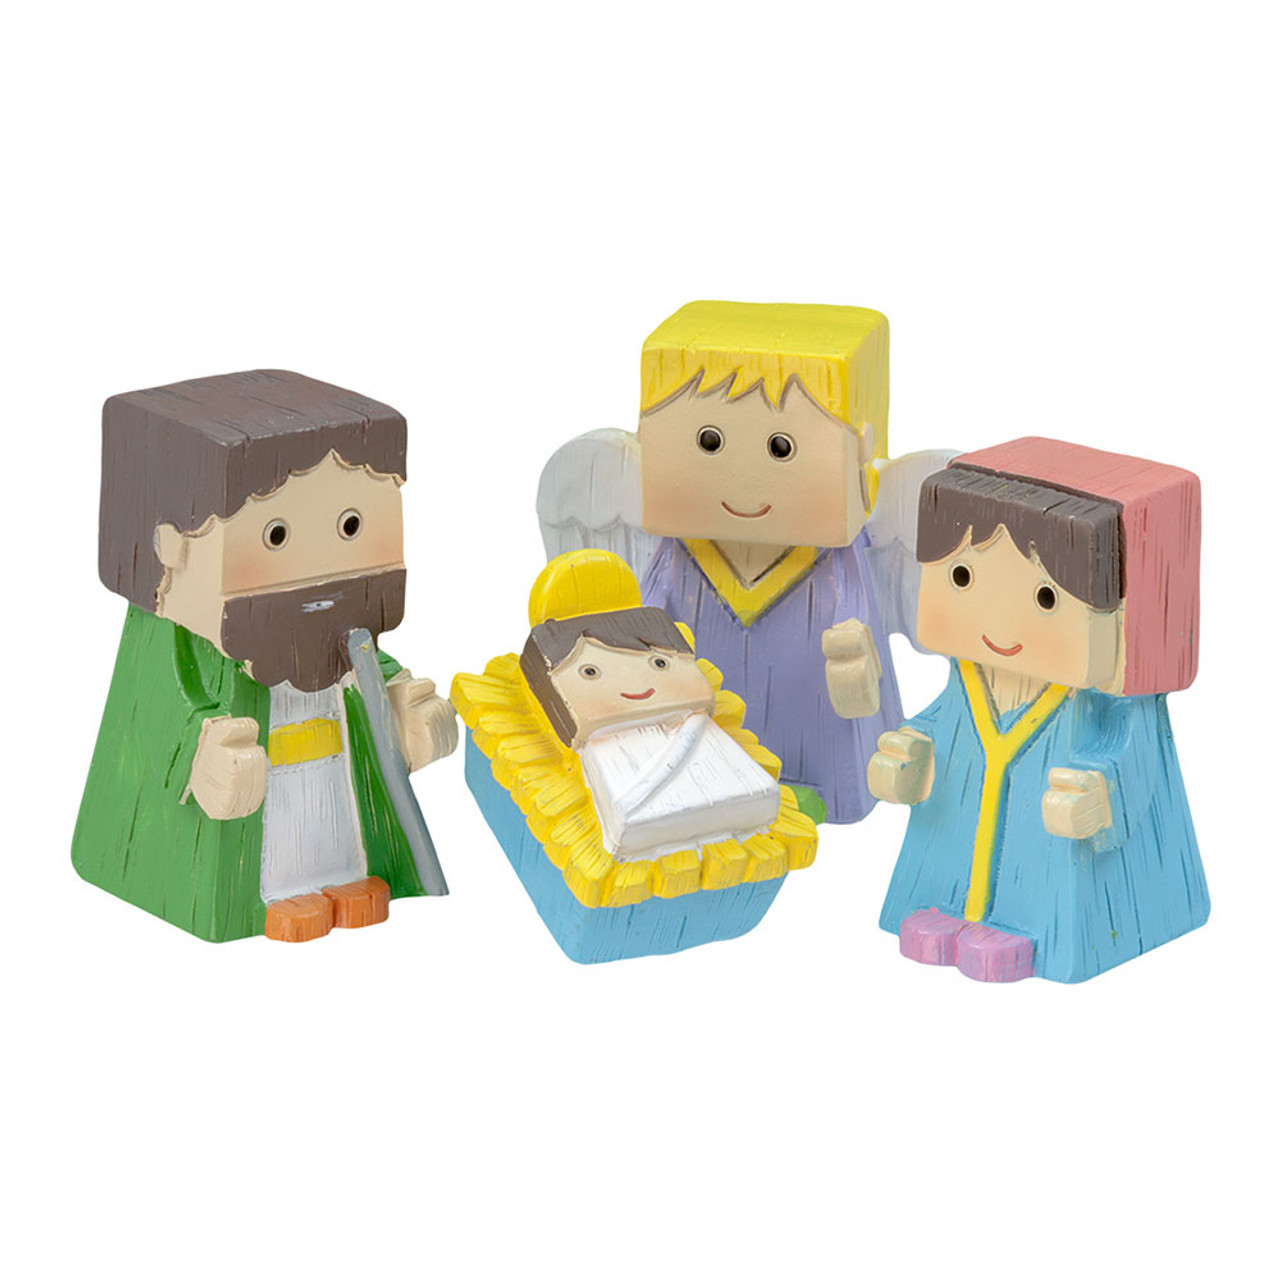 Nativity Set with Resin Cube Figures